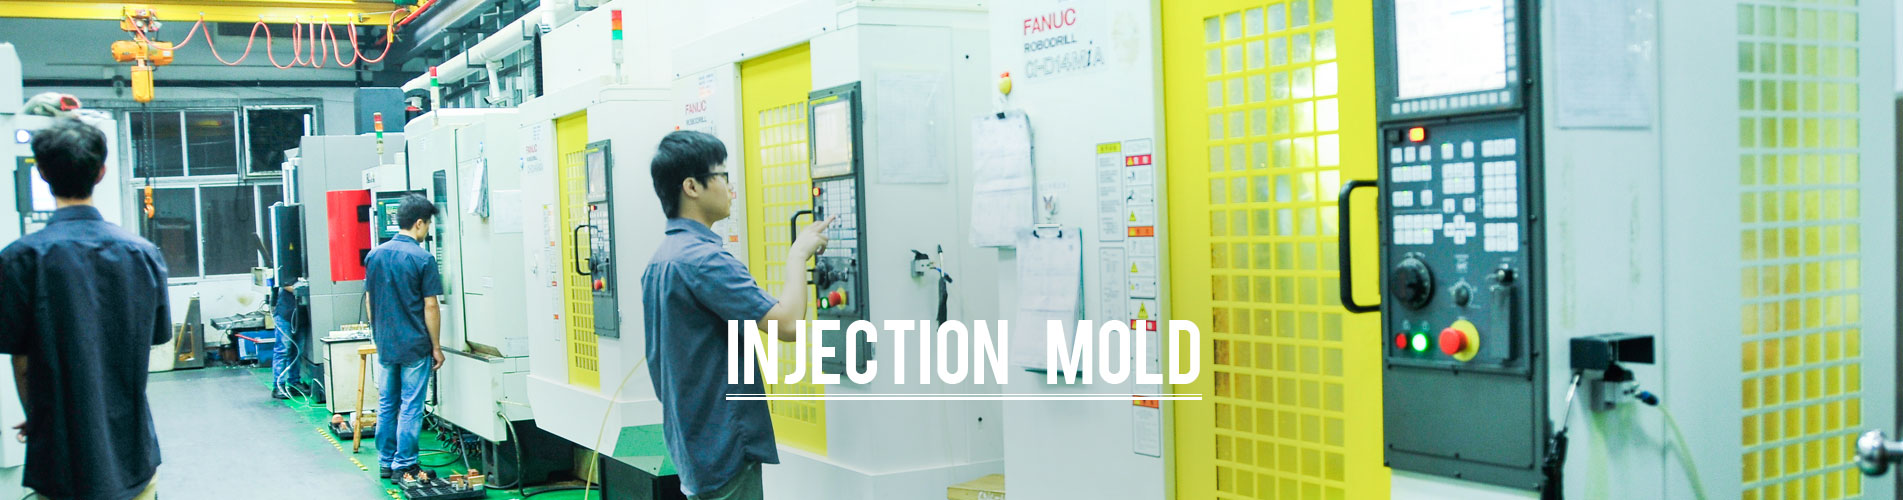 injection mold banner